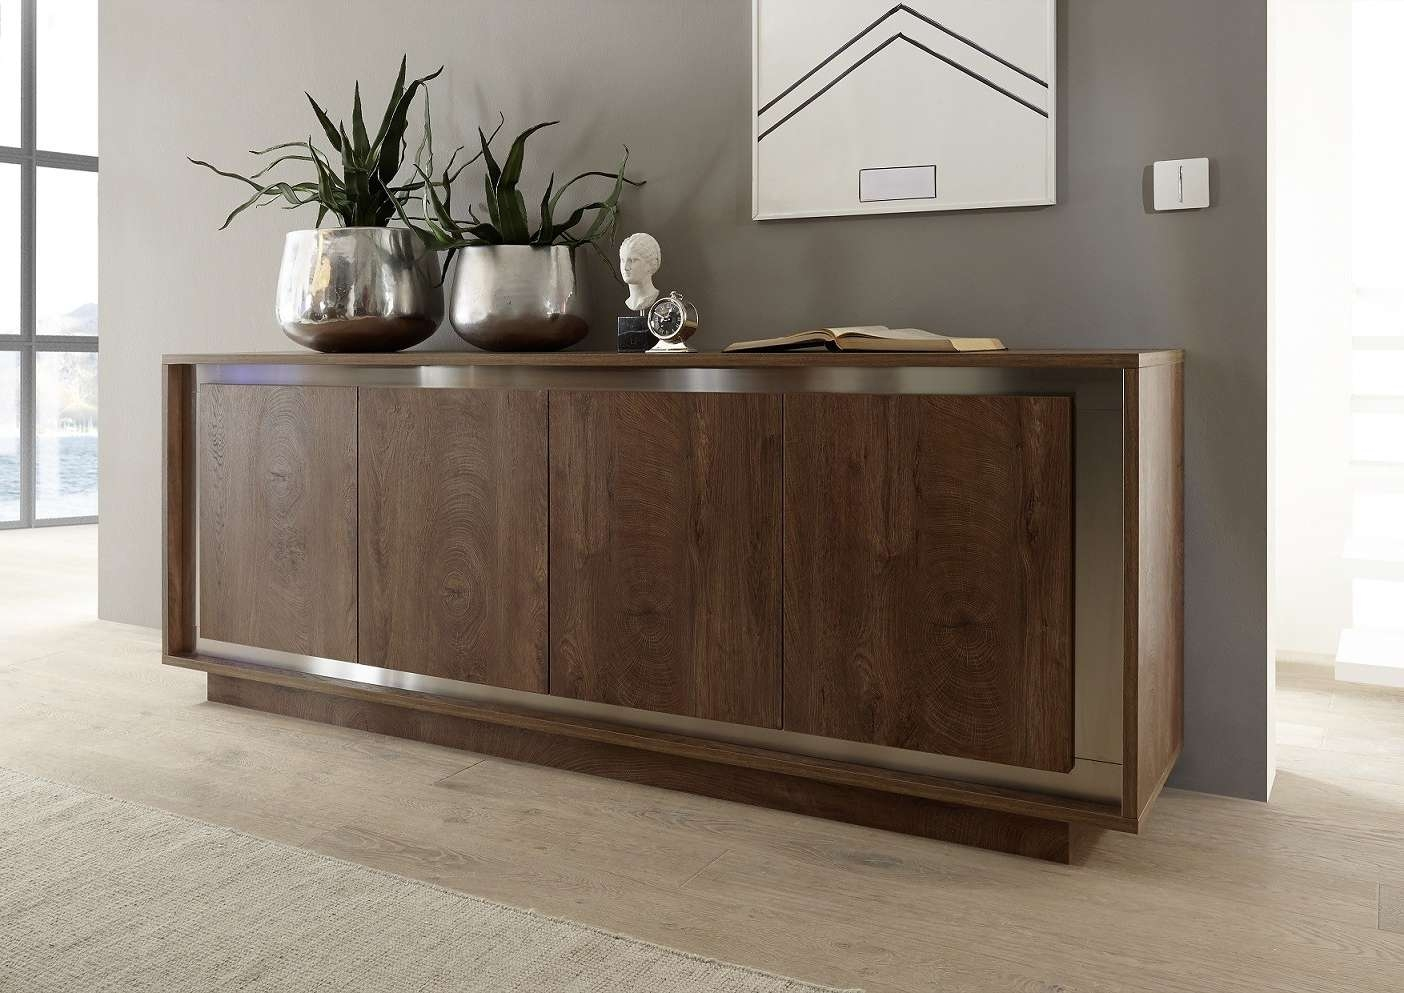 Modern Sideboards Uk – Sena Home Furniture With Regard To Lounge Sideboards (View 8 of 20)